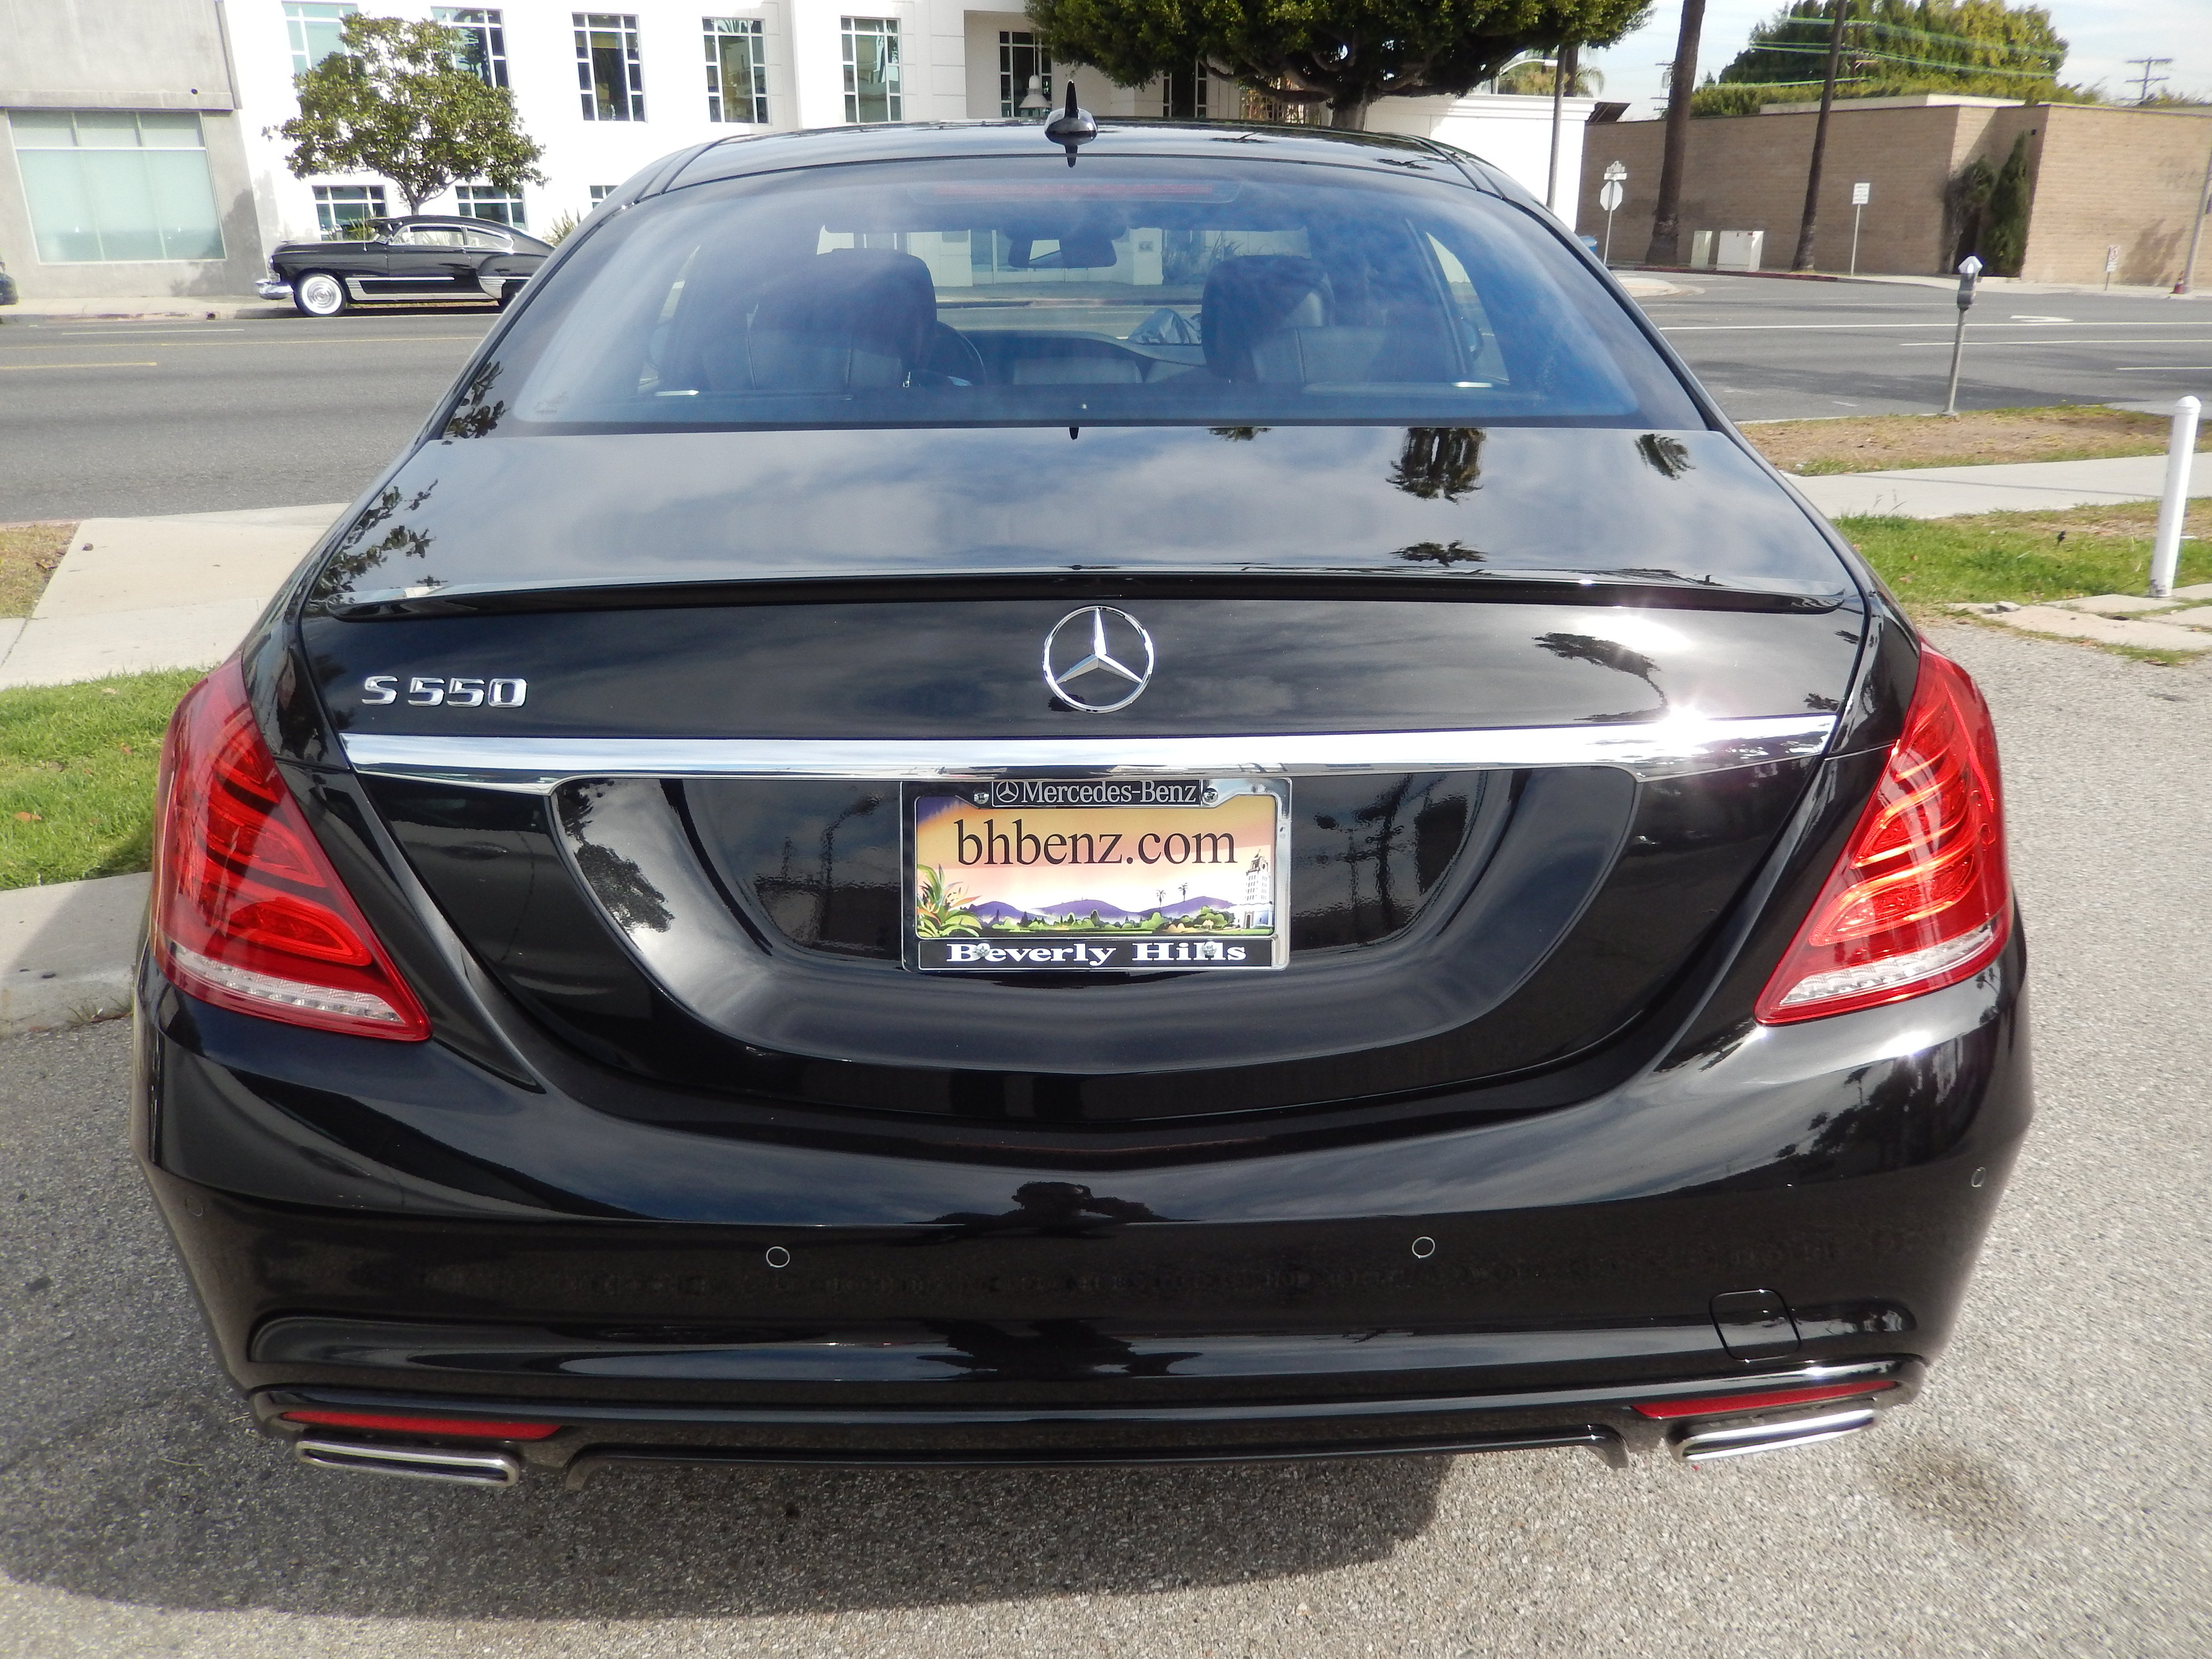 Mercedes benz s550 rental in los angeles for Where can i rent a mercedes benz